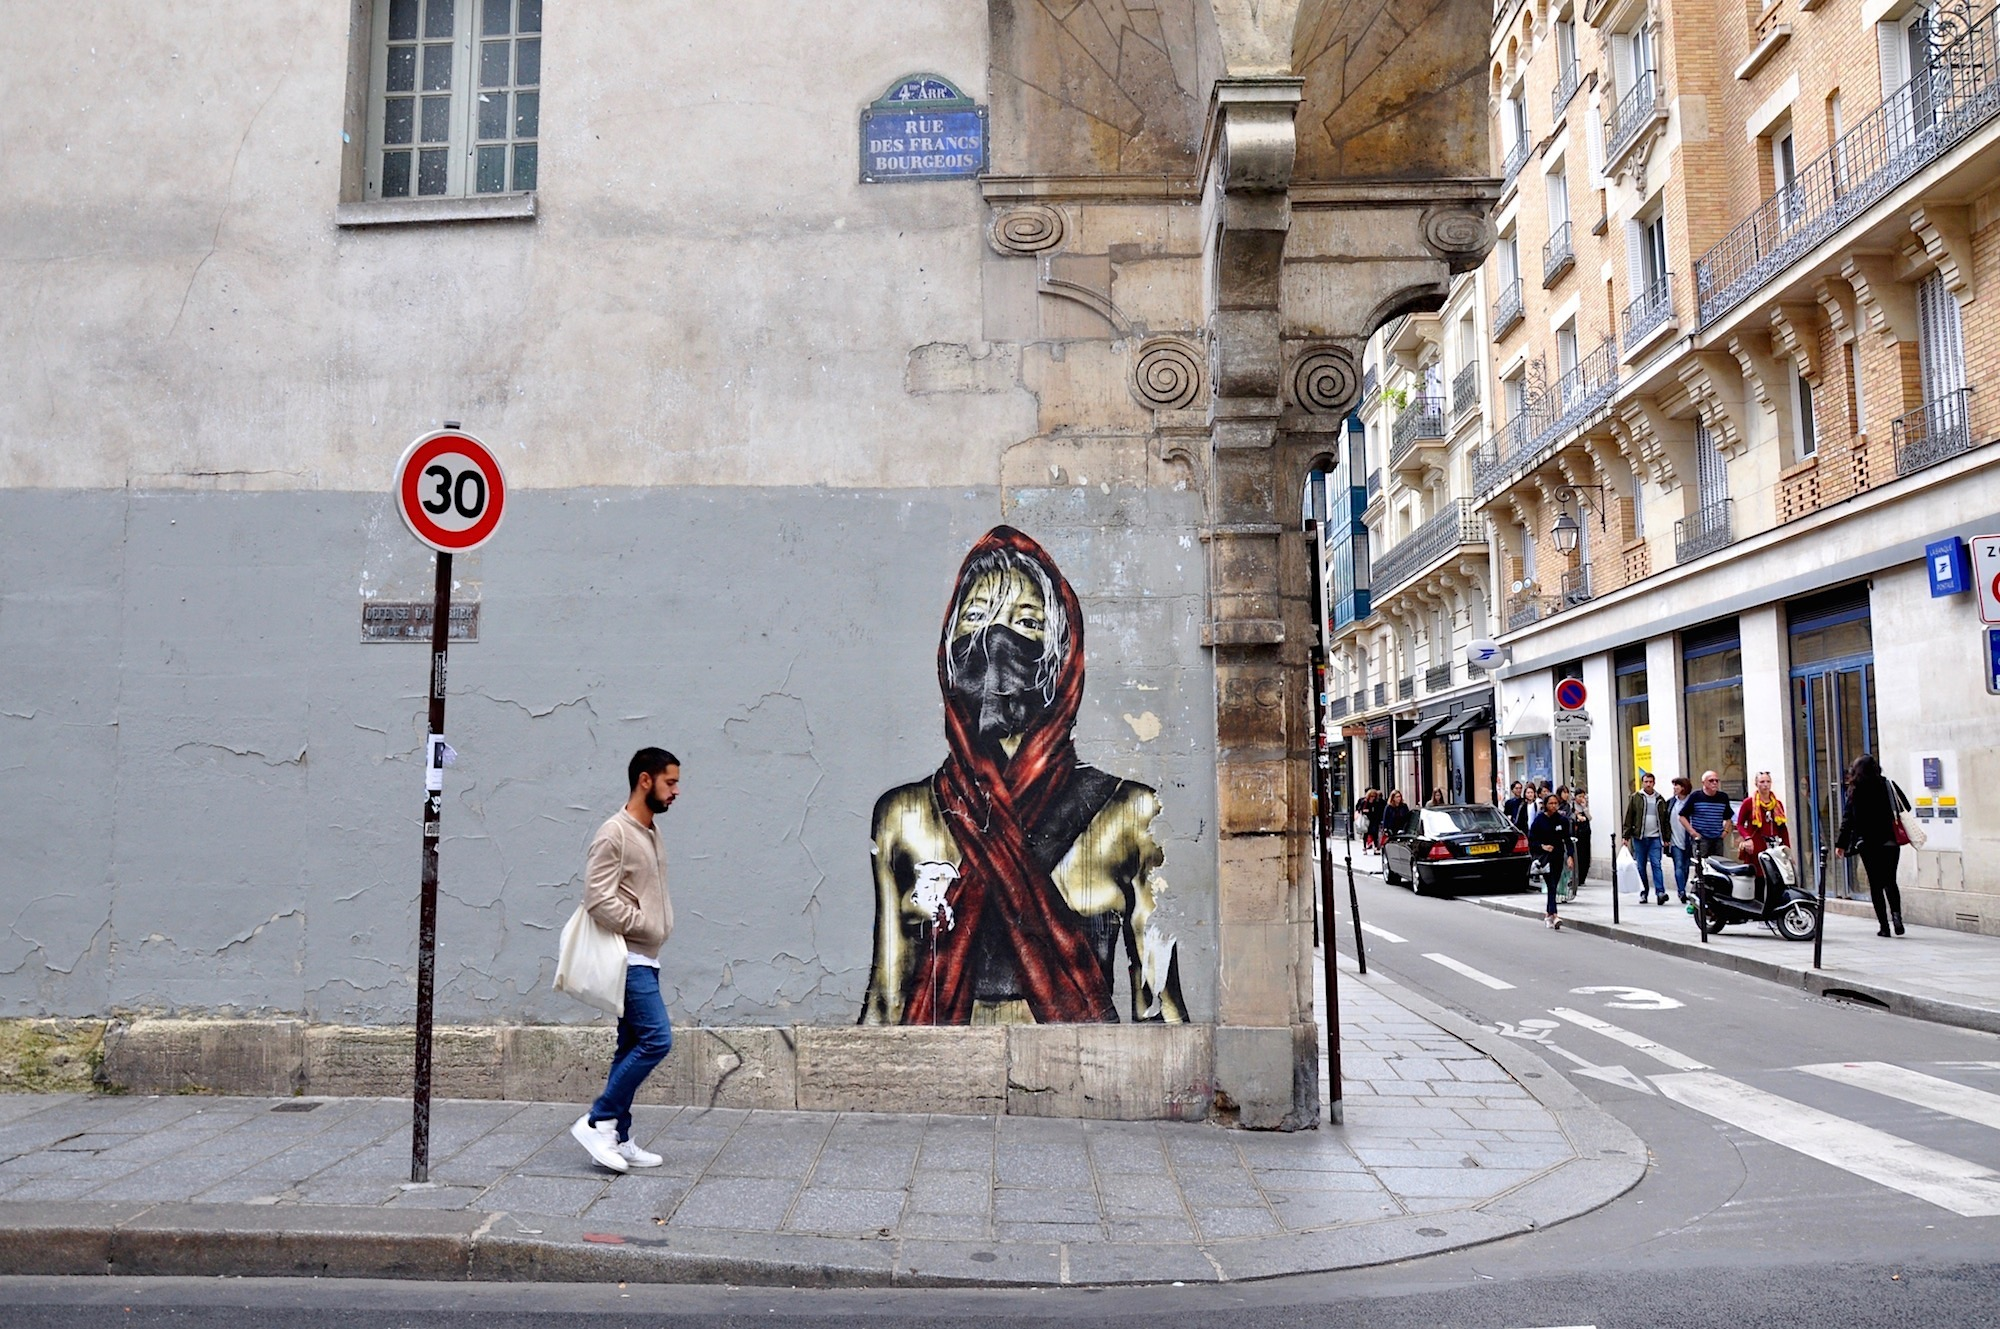 Paris is full of street art to explore on its streets. Find out where to see some of the city's best street art.